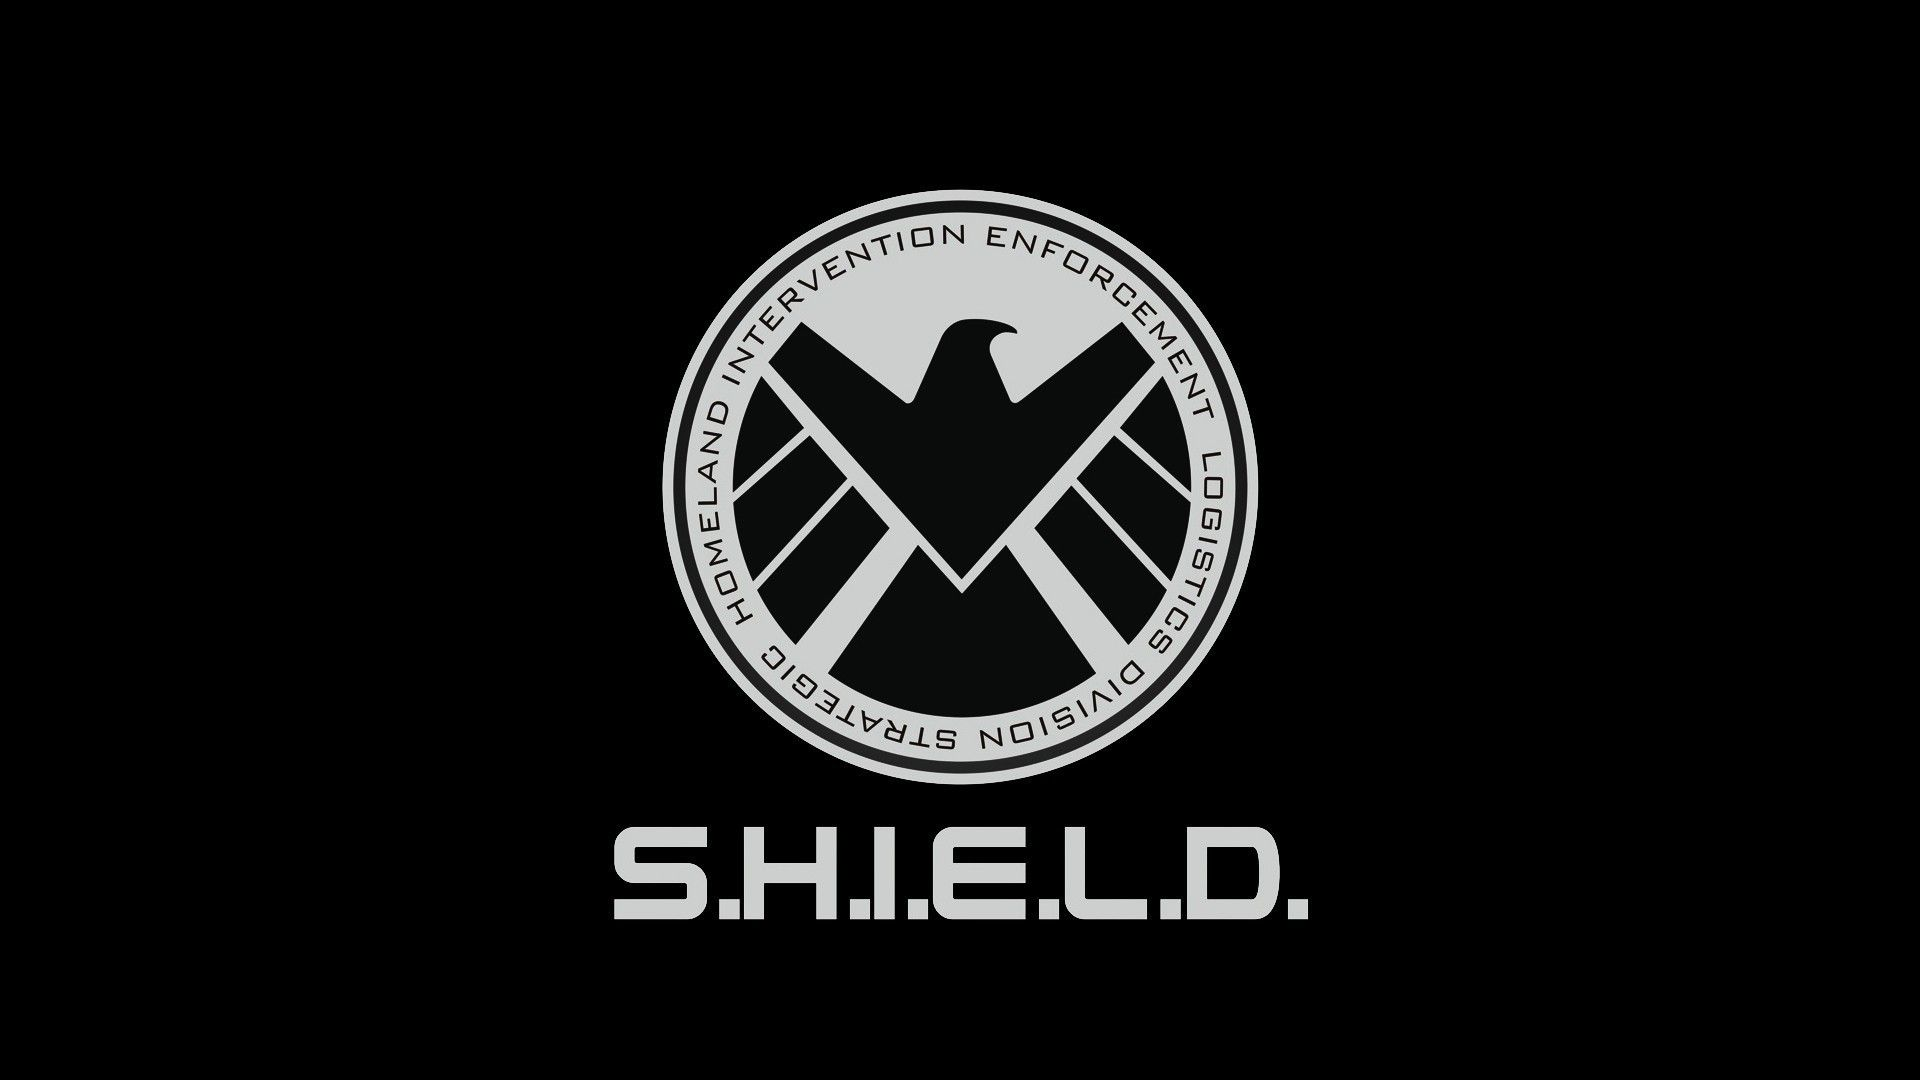 Shield Logo Wallpapers Top Free Shield Logo Backgrounds Wallpaperaccess